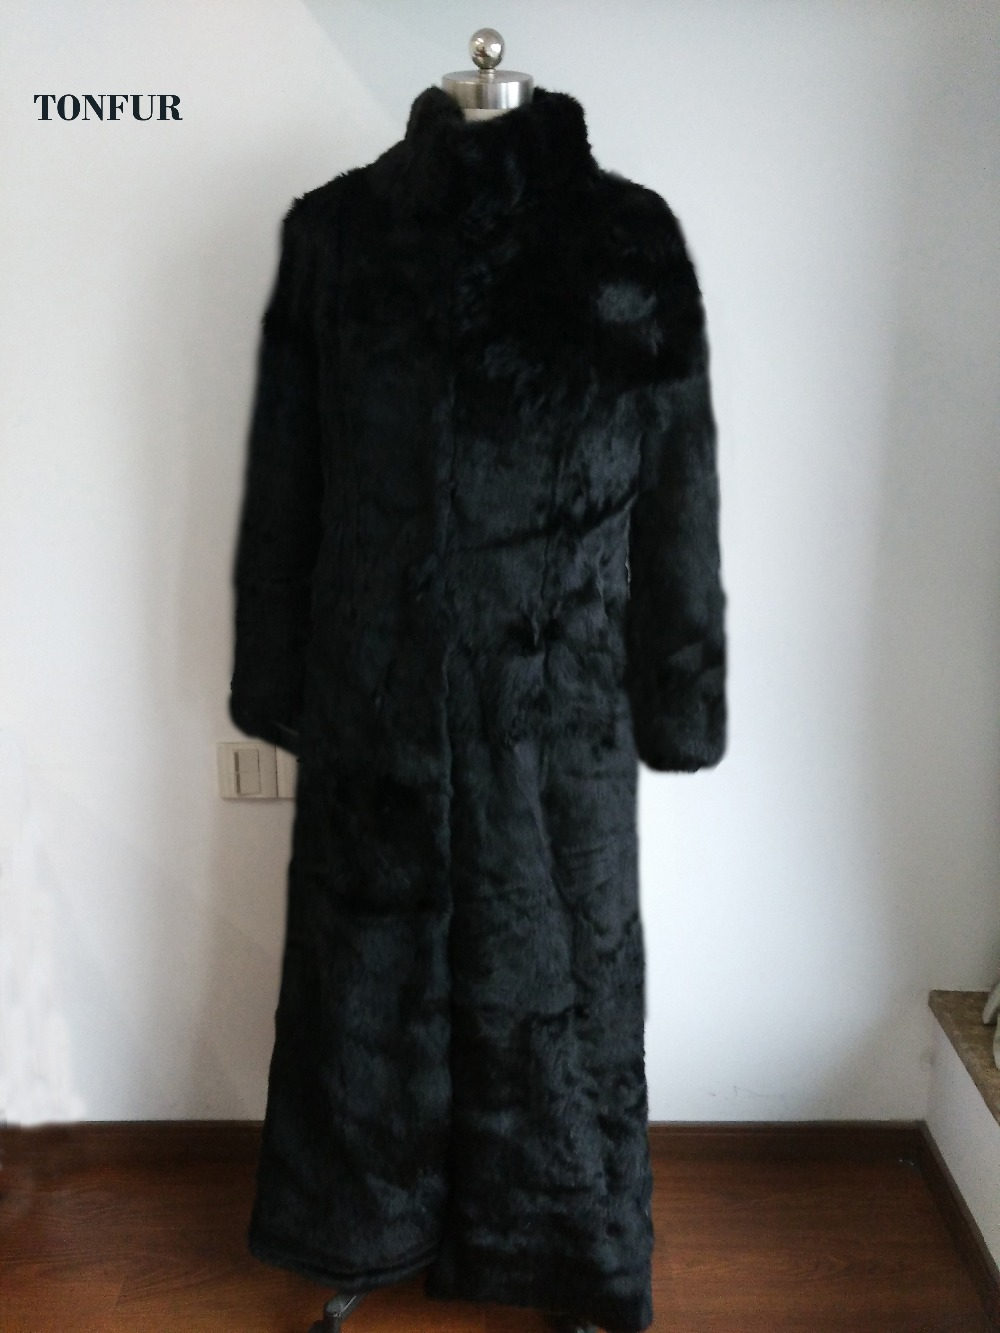 Mandarin Collar Whole Skin Genuine Rabbit Fur Coat Super X Long 140cm Overcoat Wholesale and Retail Customize Plus Size WSR98